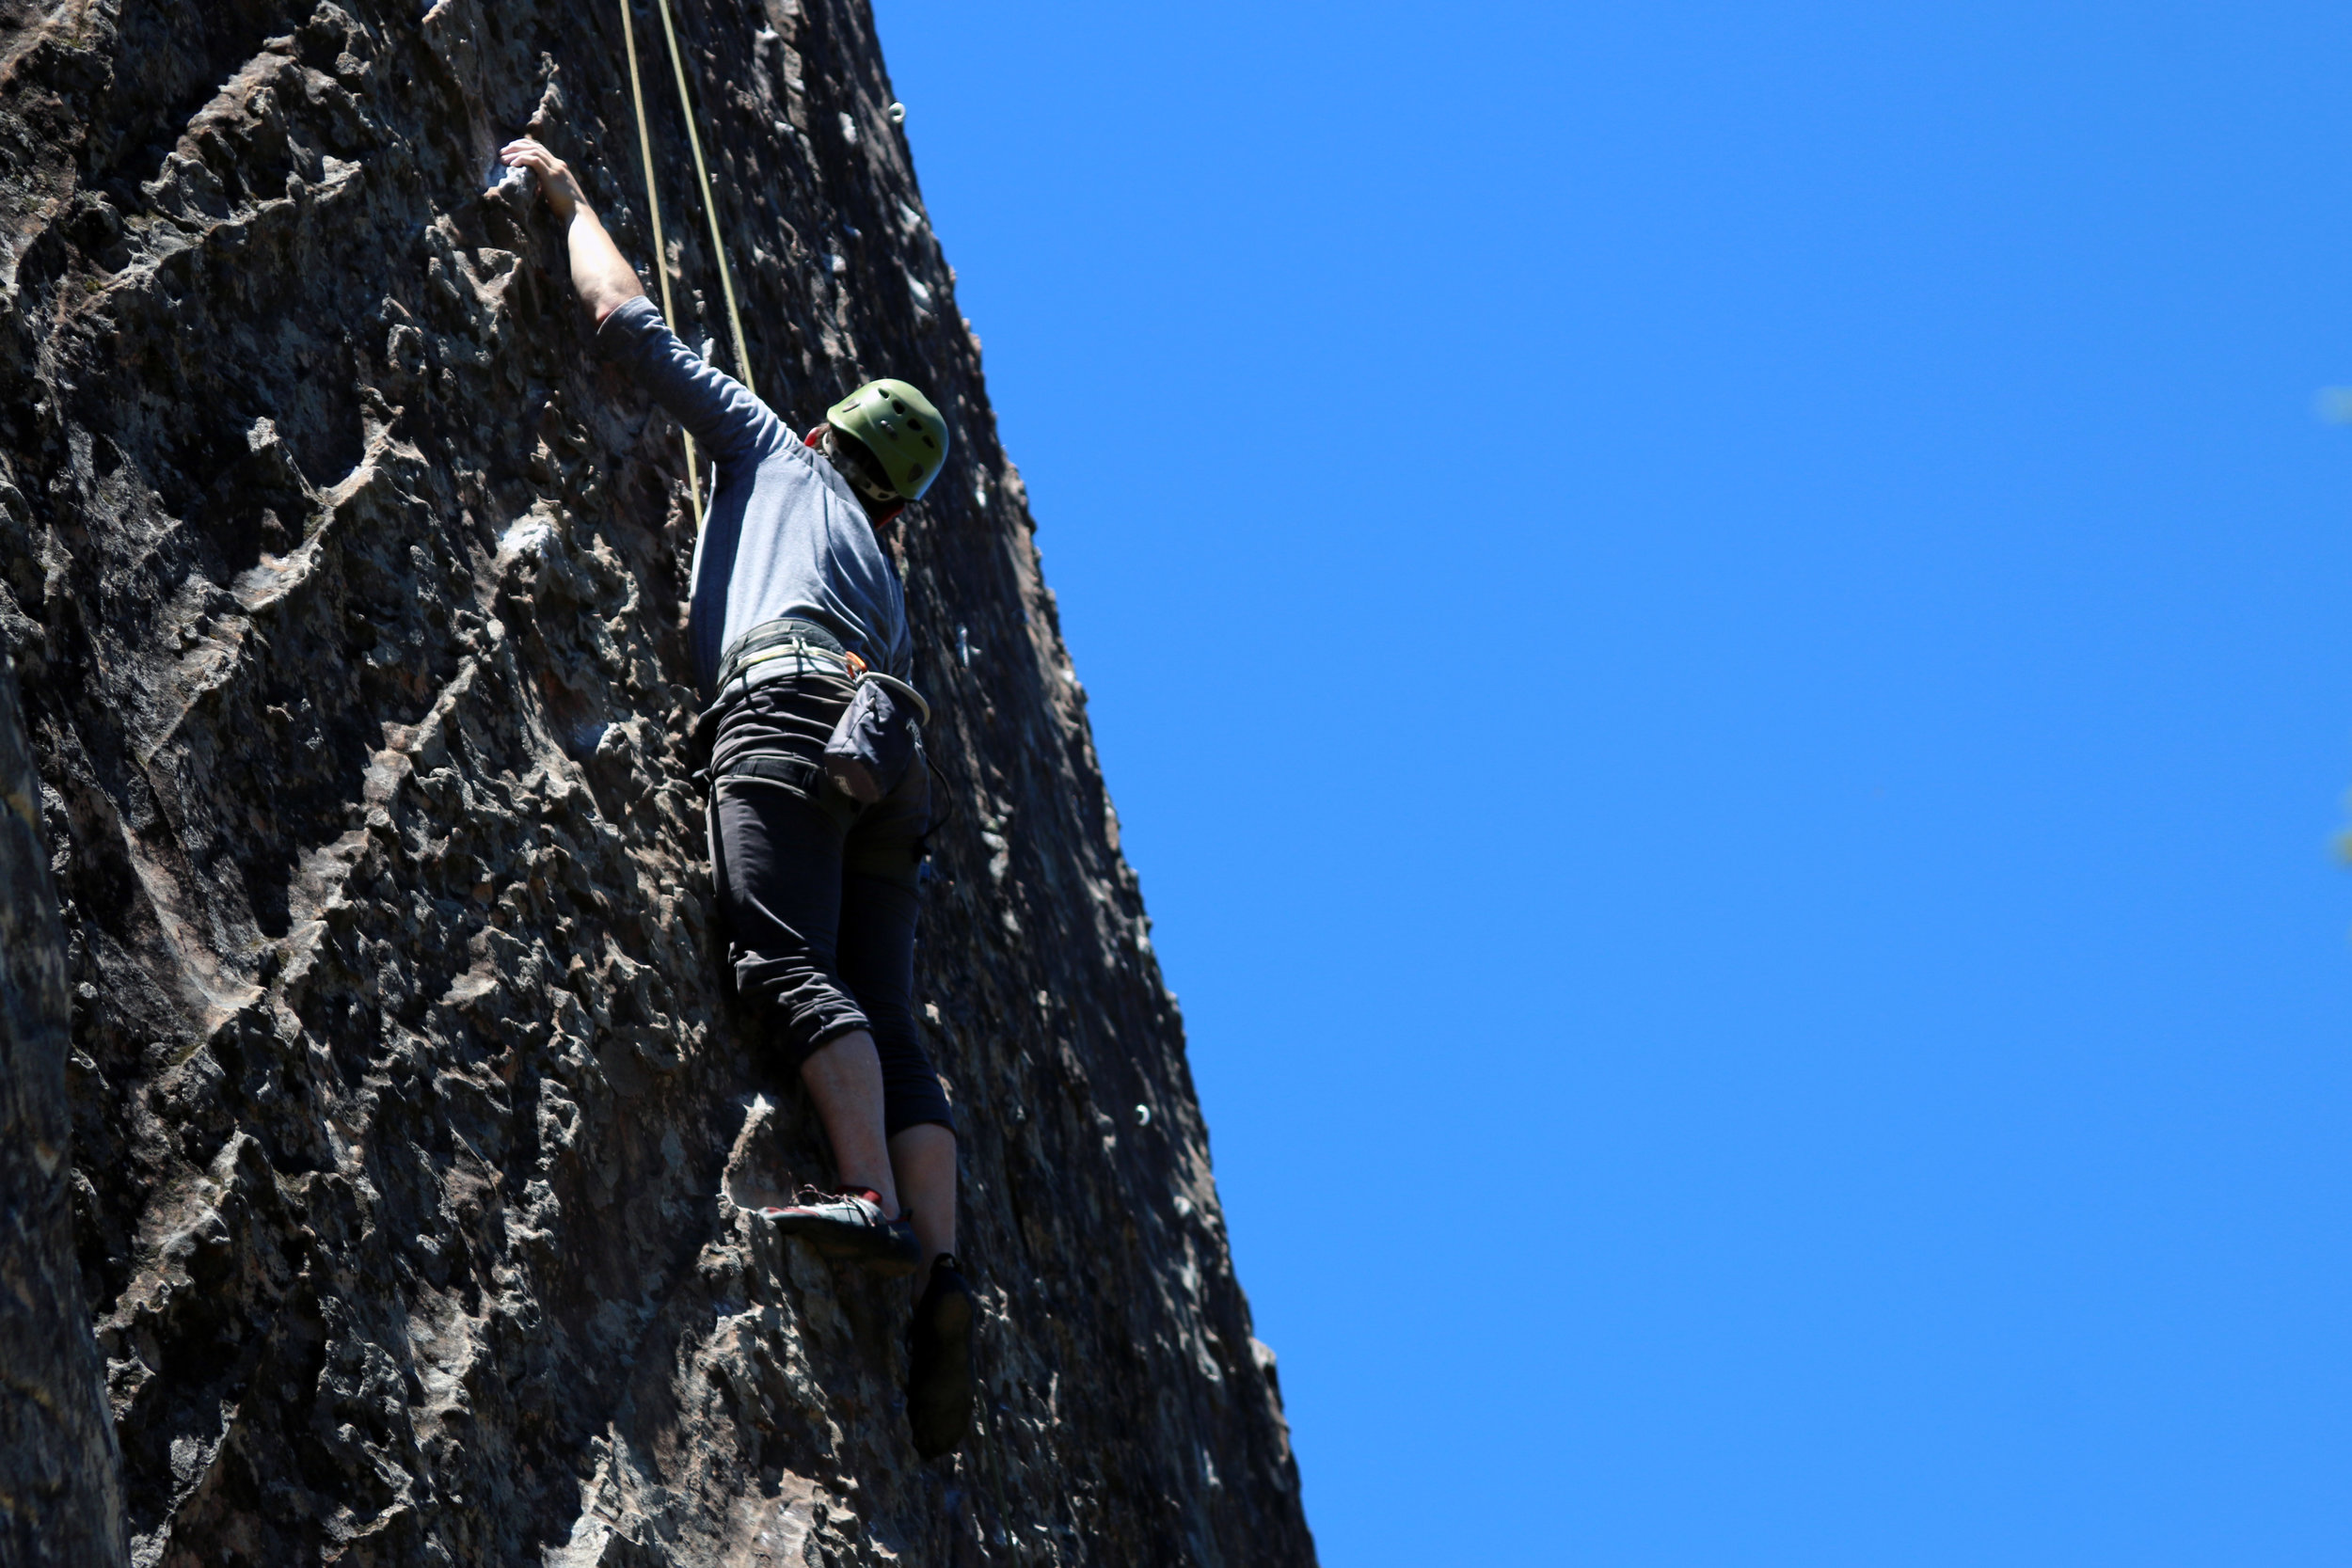 Rock Climbing - The surrounding mountains are home to plenty of cliffs and rocks to climb! Boys wanting to rock climb will have the chance to go off-site to practice their climbing skills. As they progress, campers can participate in more advanced climbs.